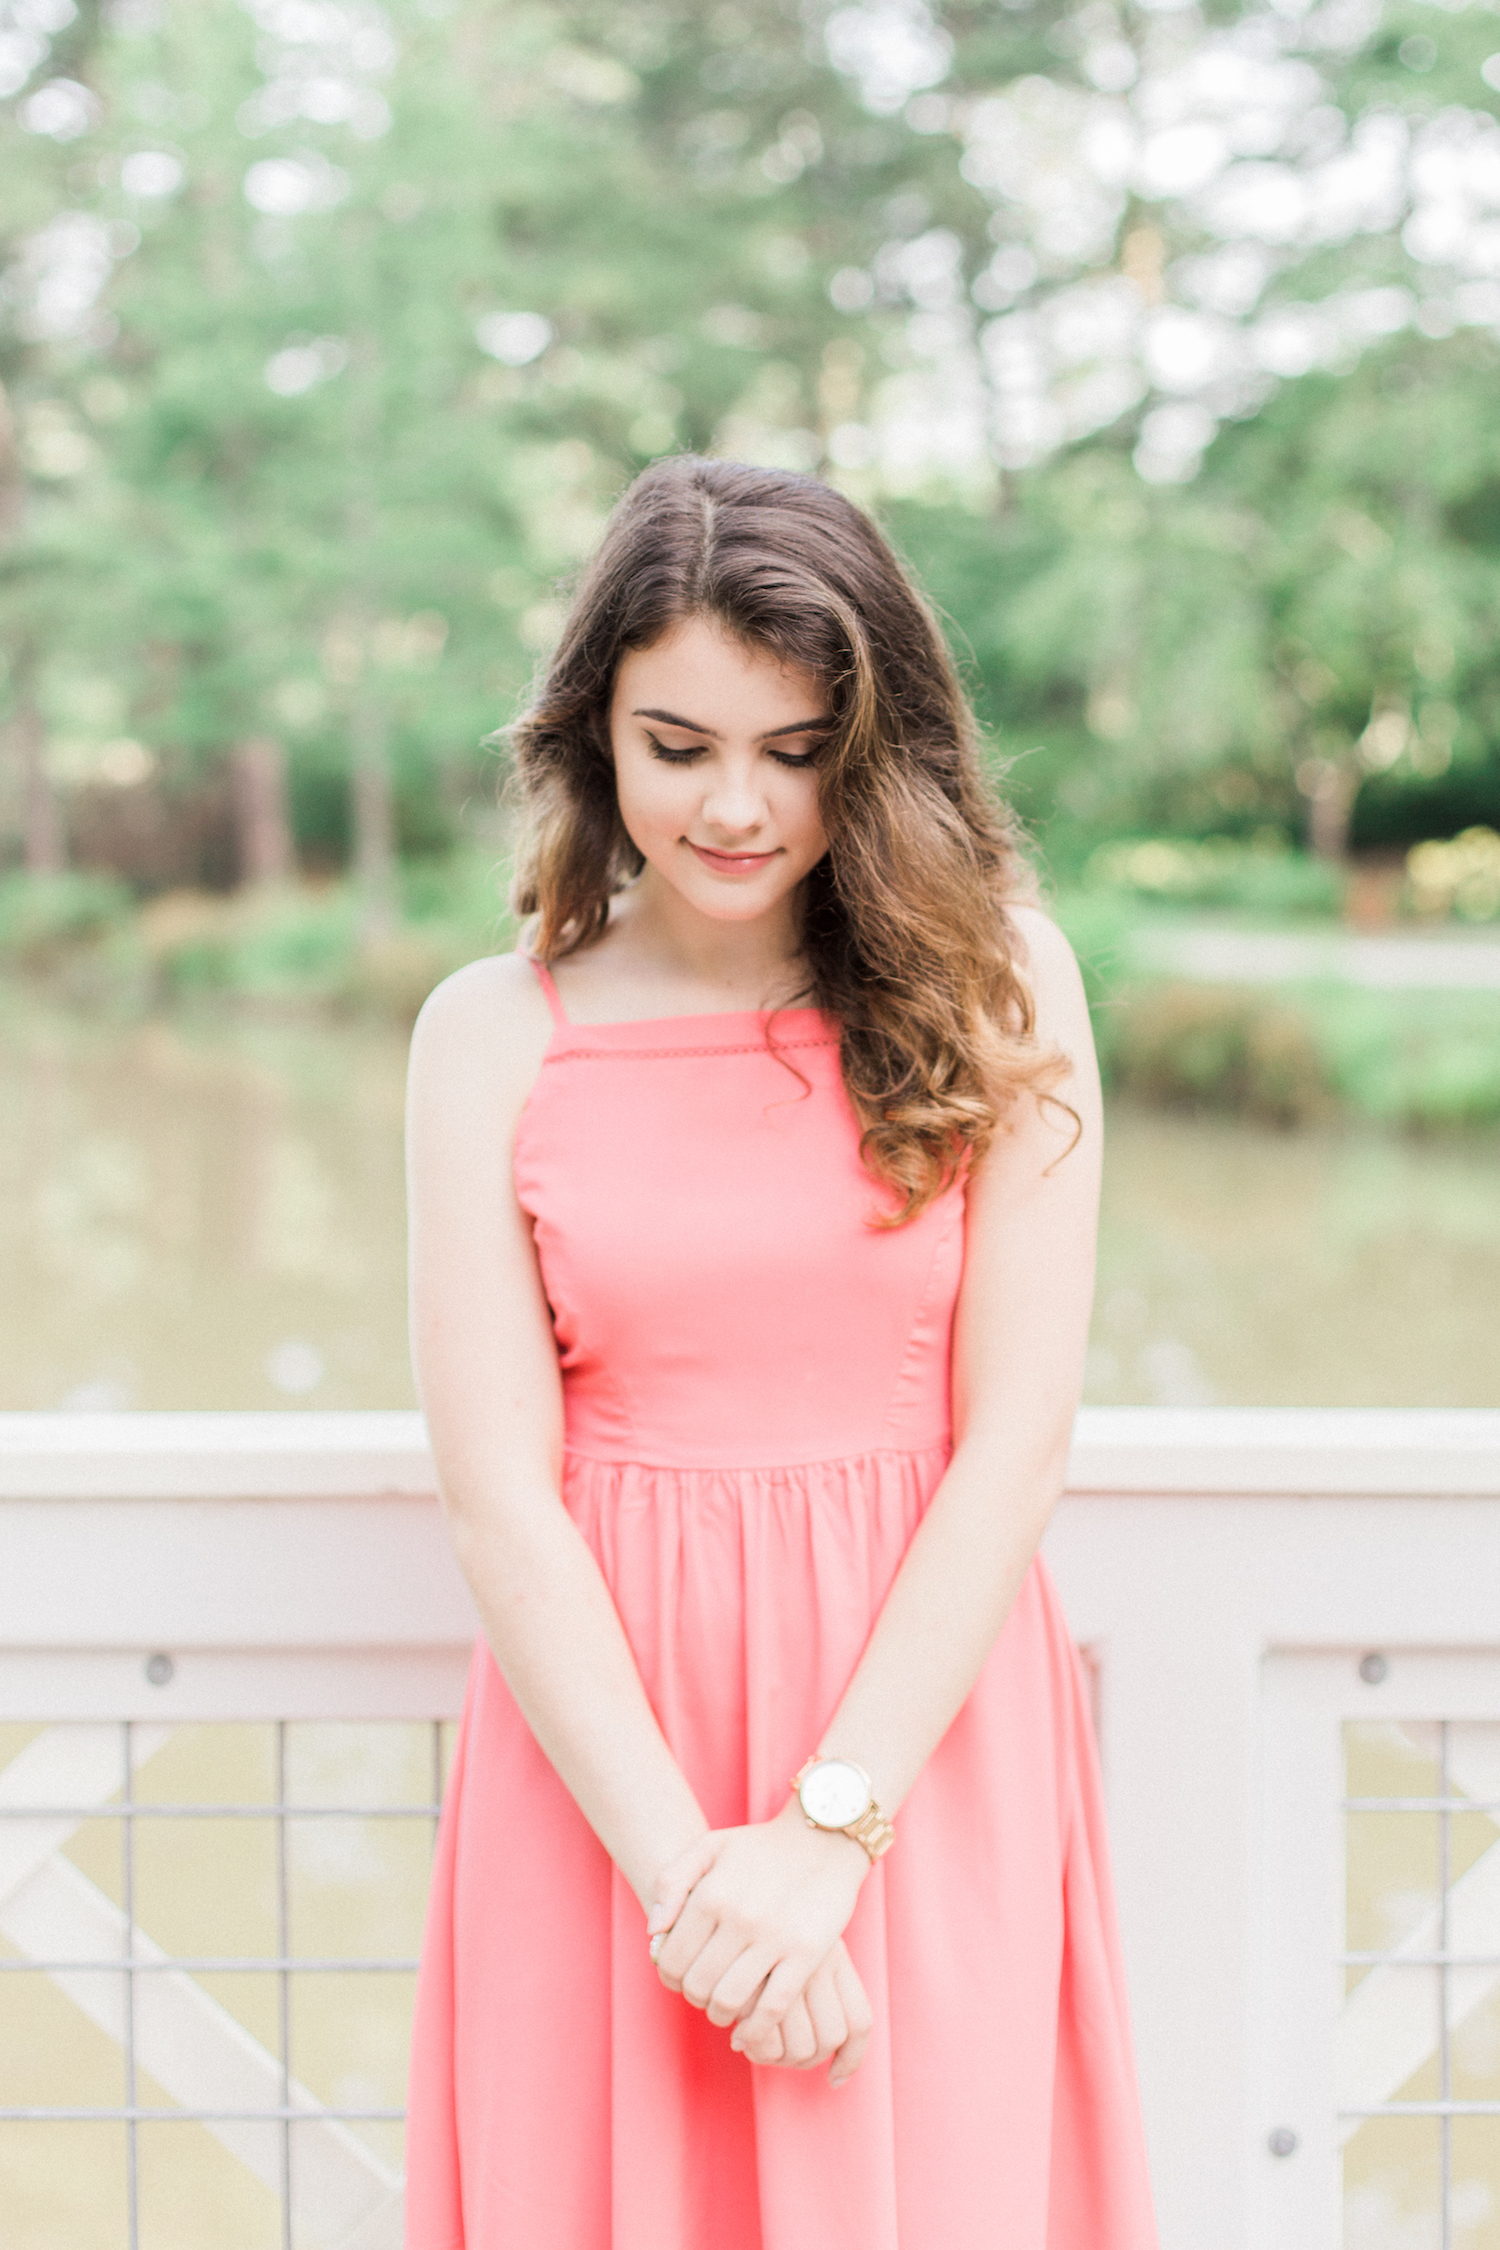 Summer time high school senior session at Vine Mansion Park by Kesia Marie Photography. Featuring feminine, garden details. Senior photos on a white bridge with a pink dress.